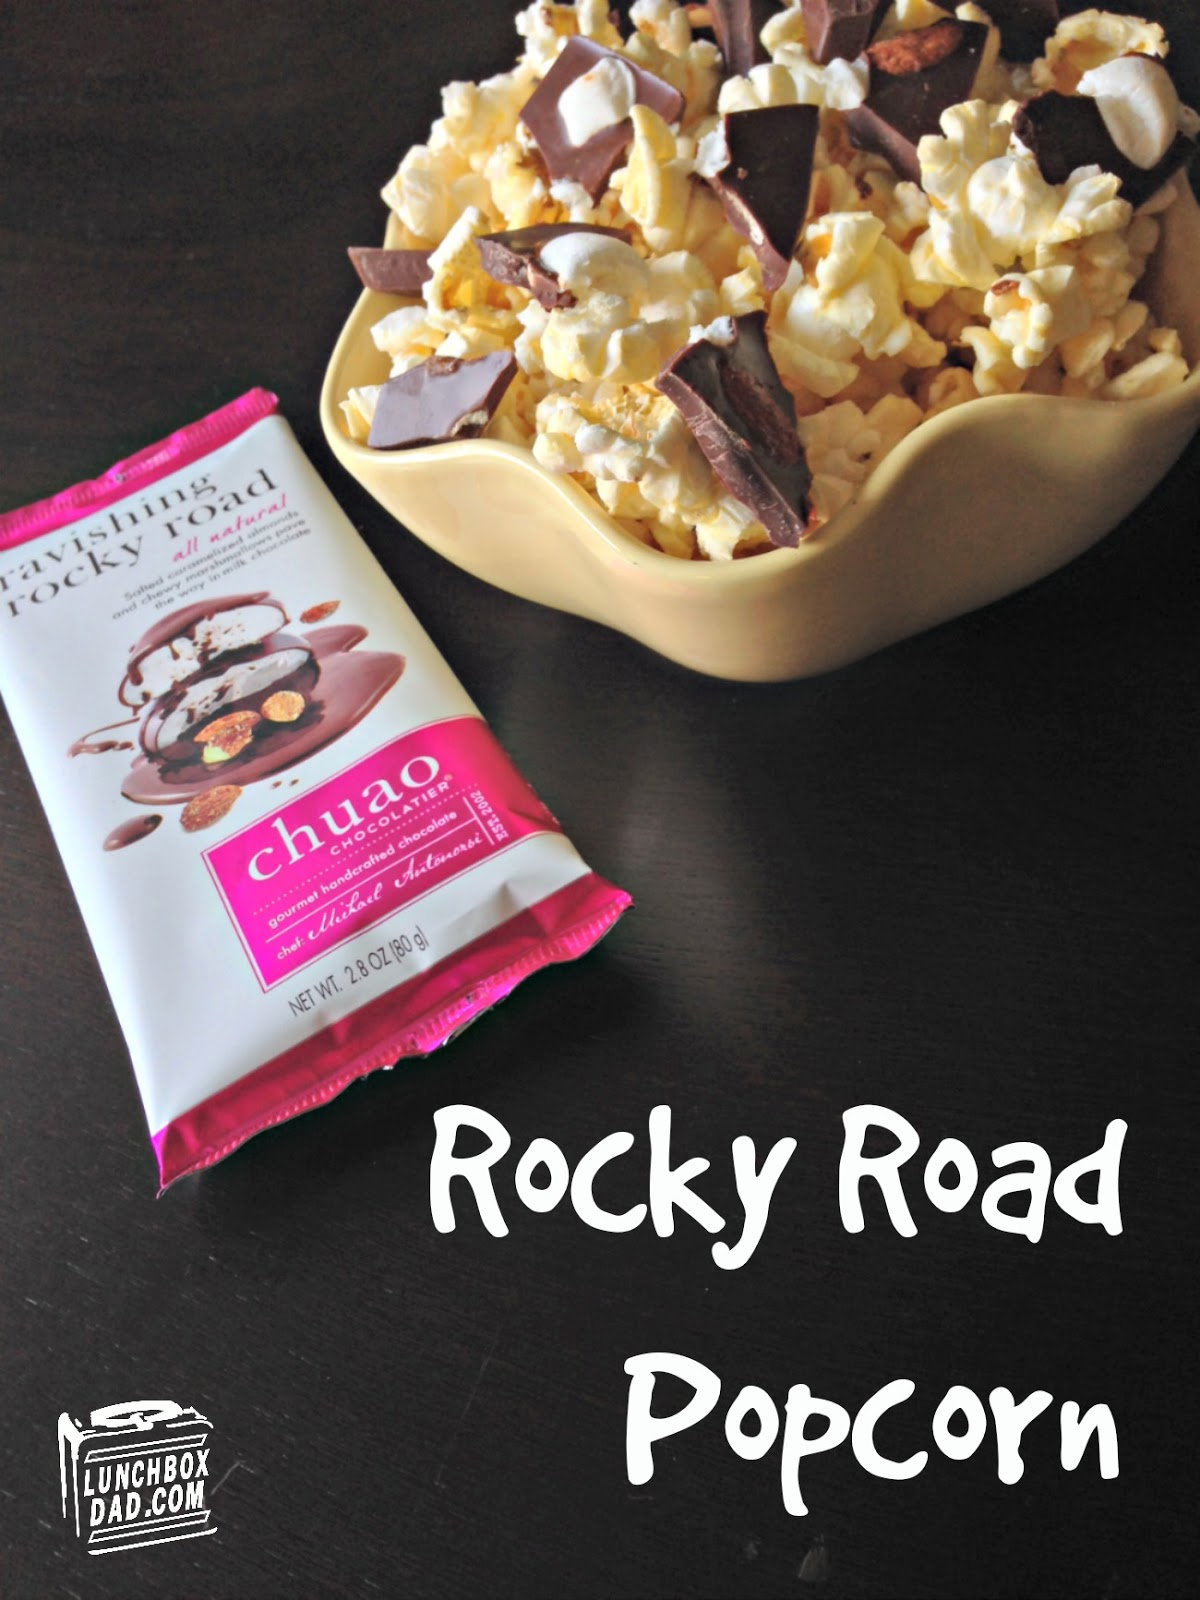 Rocky Road Popcorn with Chuao Chocolate